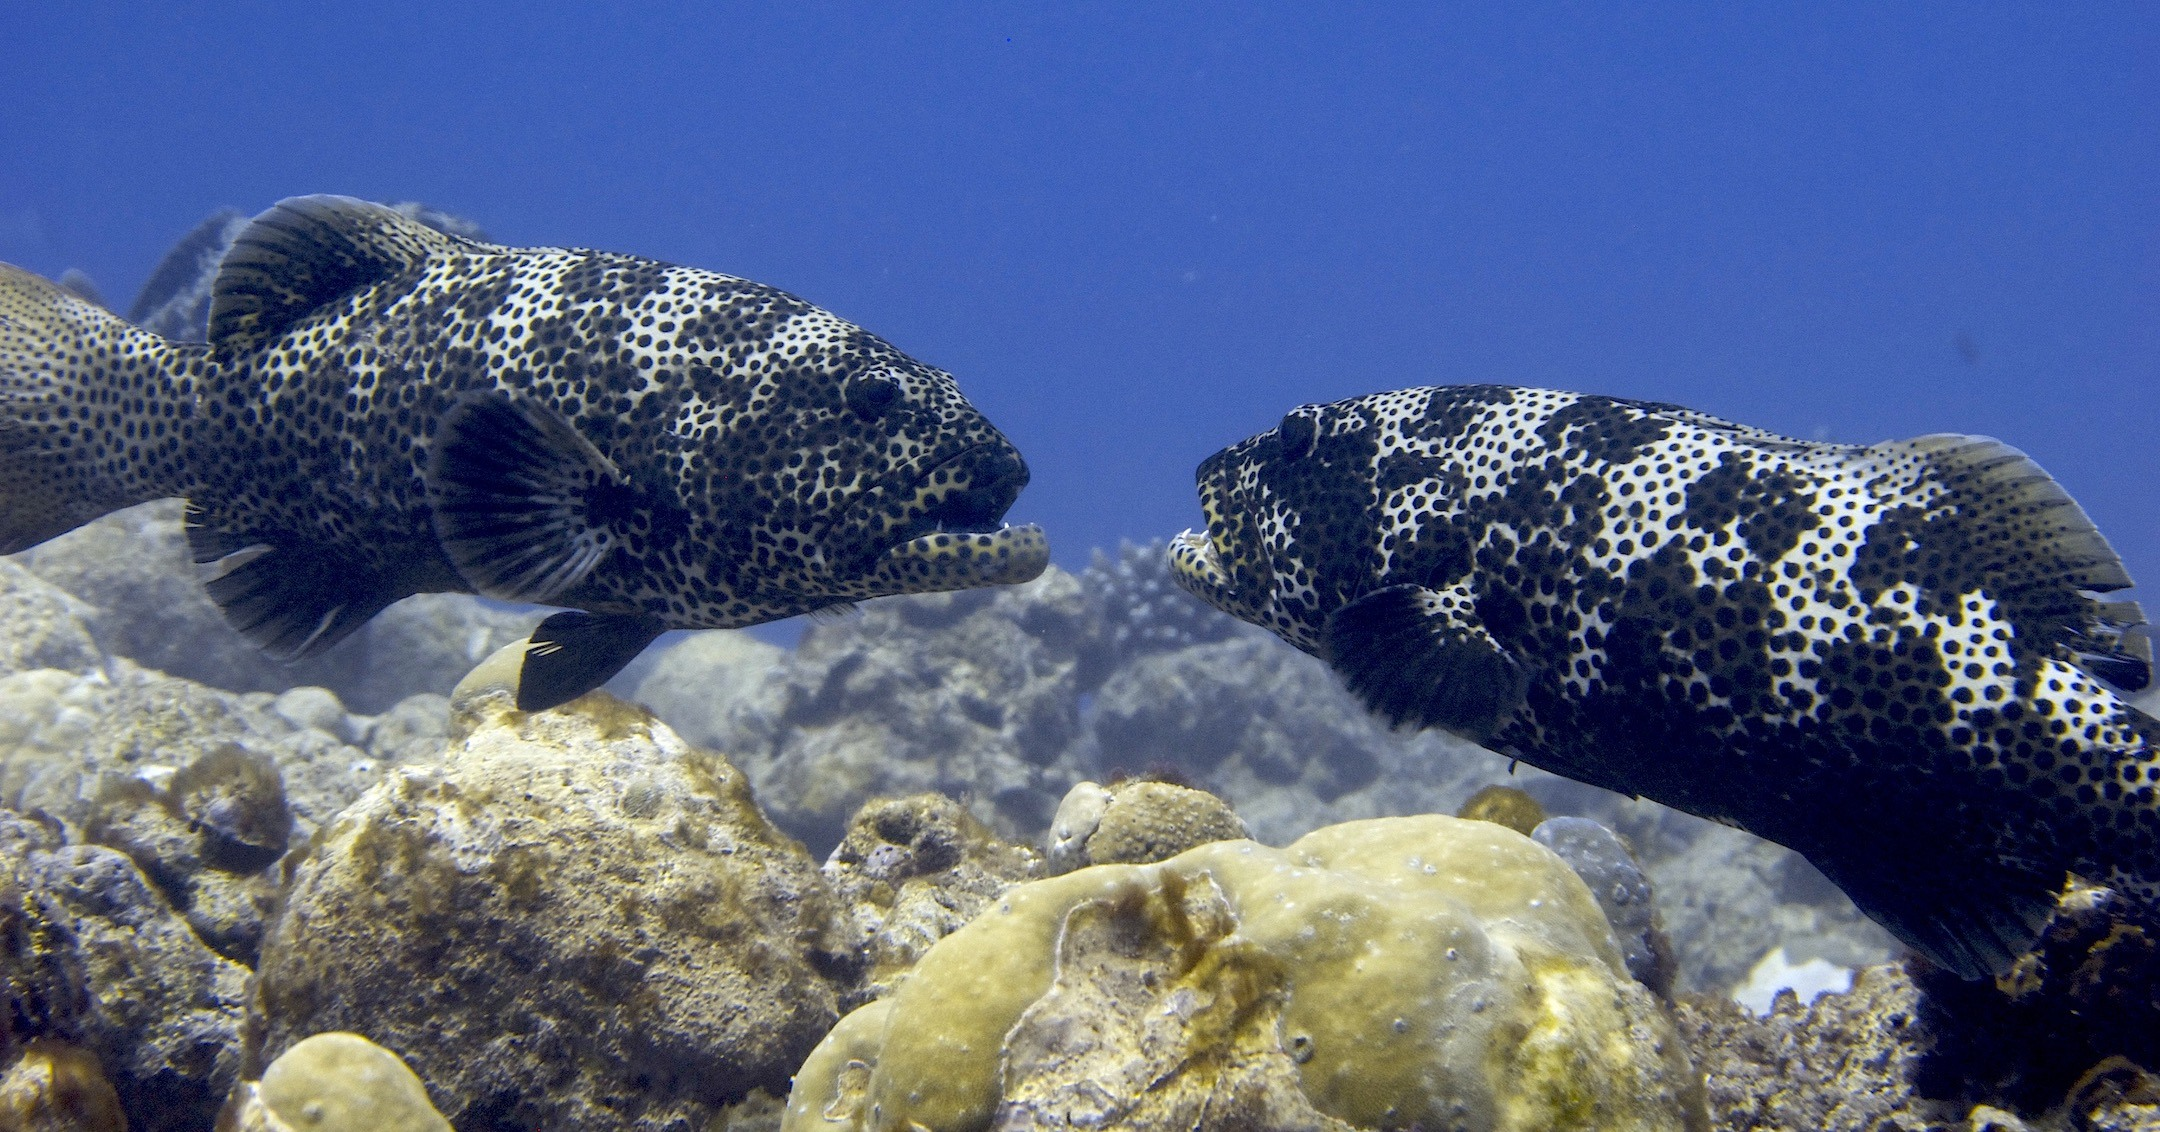 Two male squaretail groupers fighting for territory in the waters around the Lakshadweep Islands. Photo: Rucha Karkarey